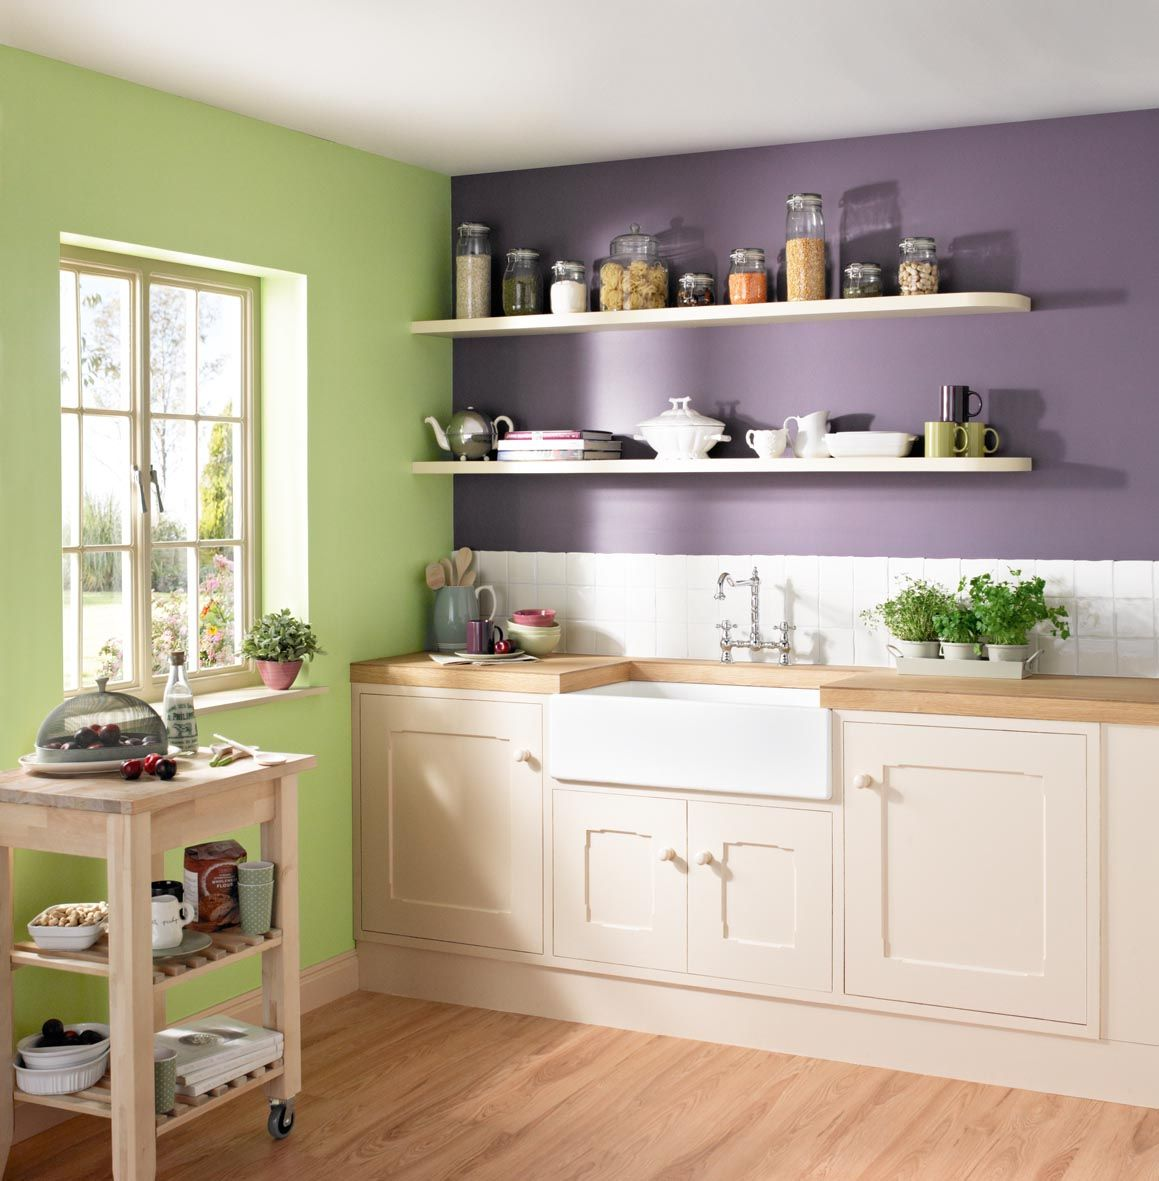 Green bathroom paint ideas - Crown Kitchen Bathroom Paint In Olive Press Green And Lola Plum Purple